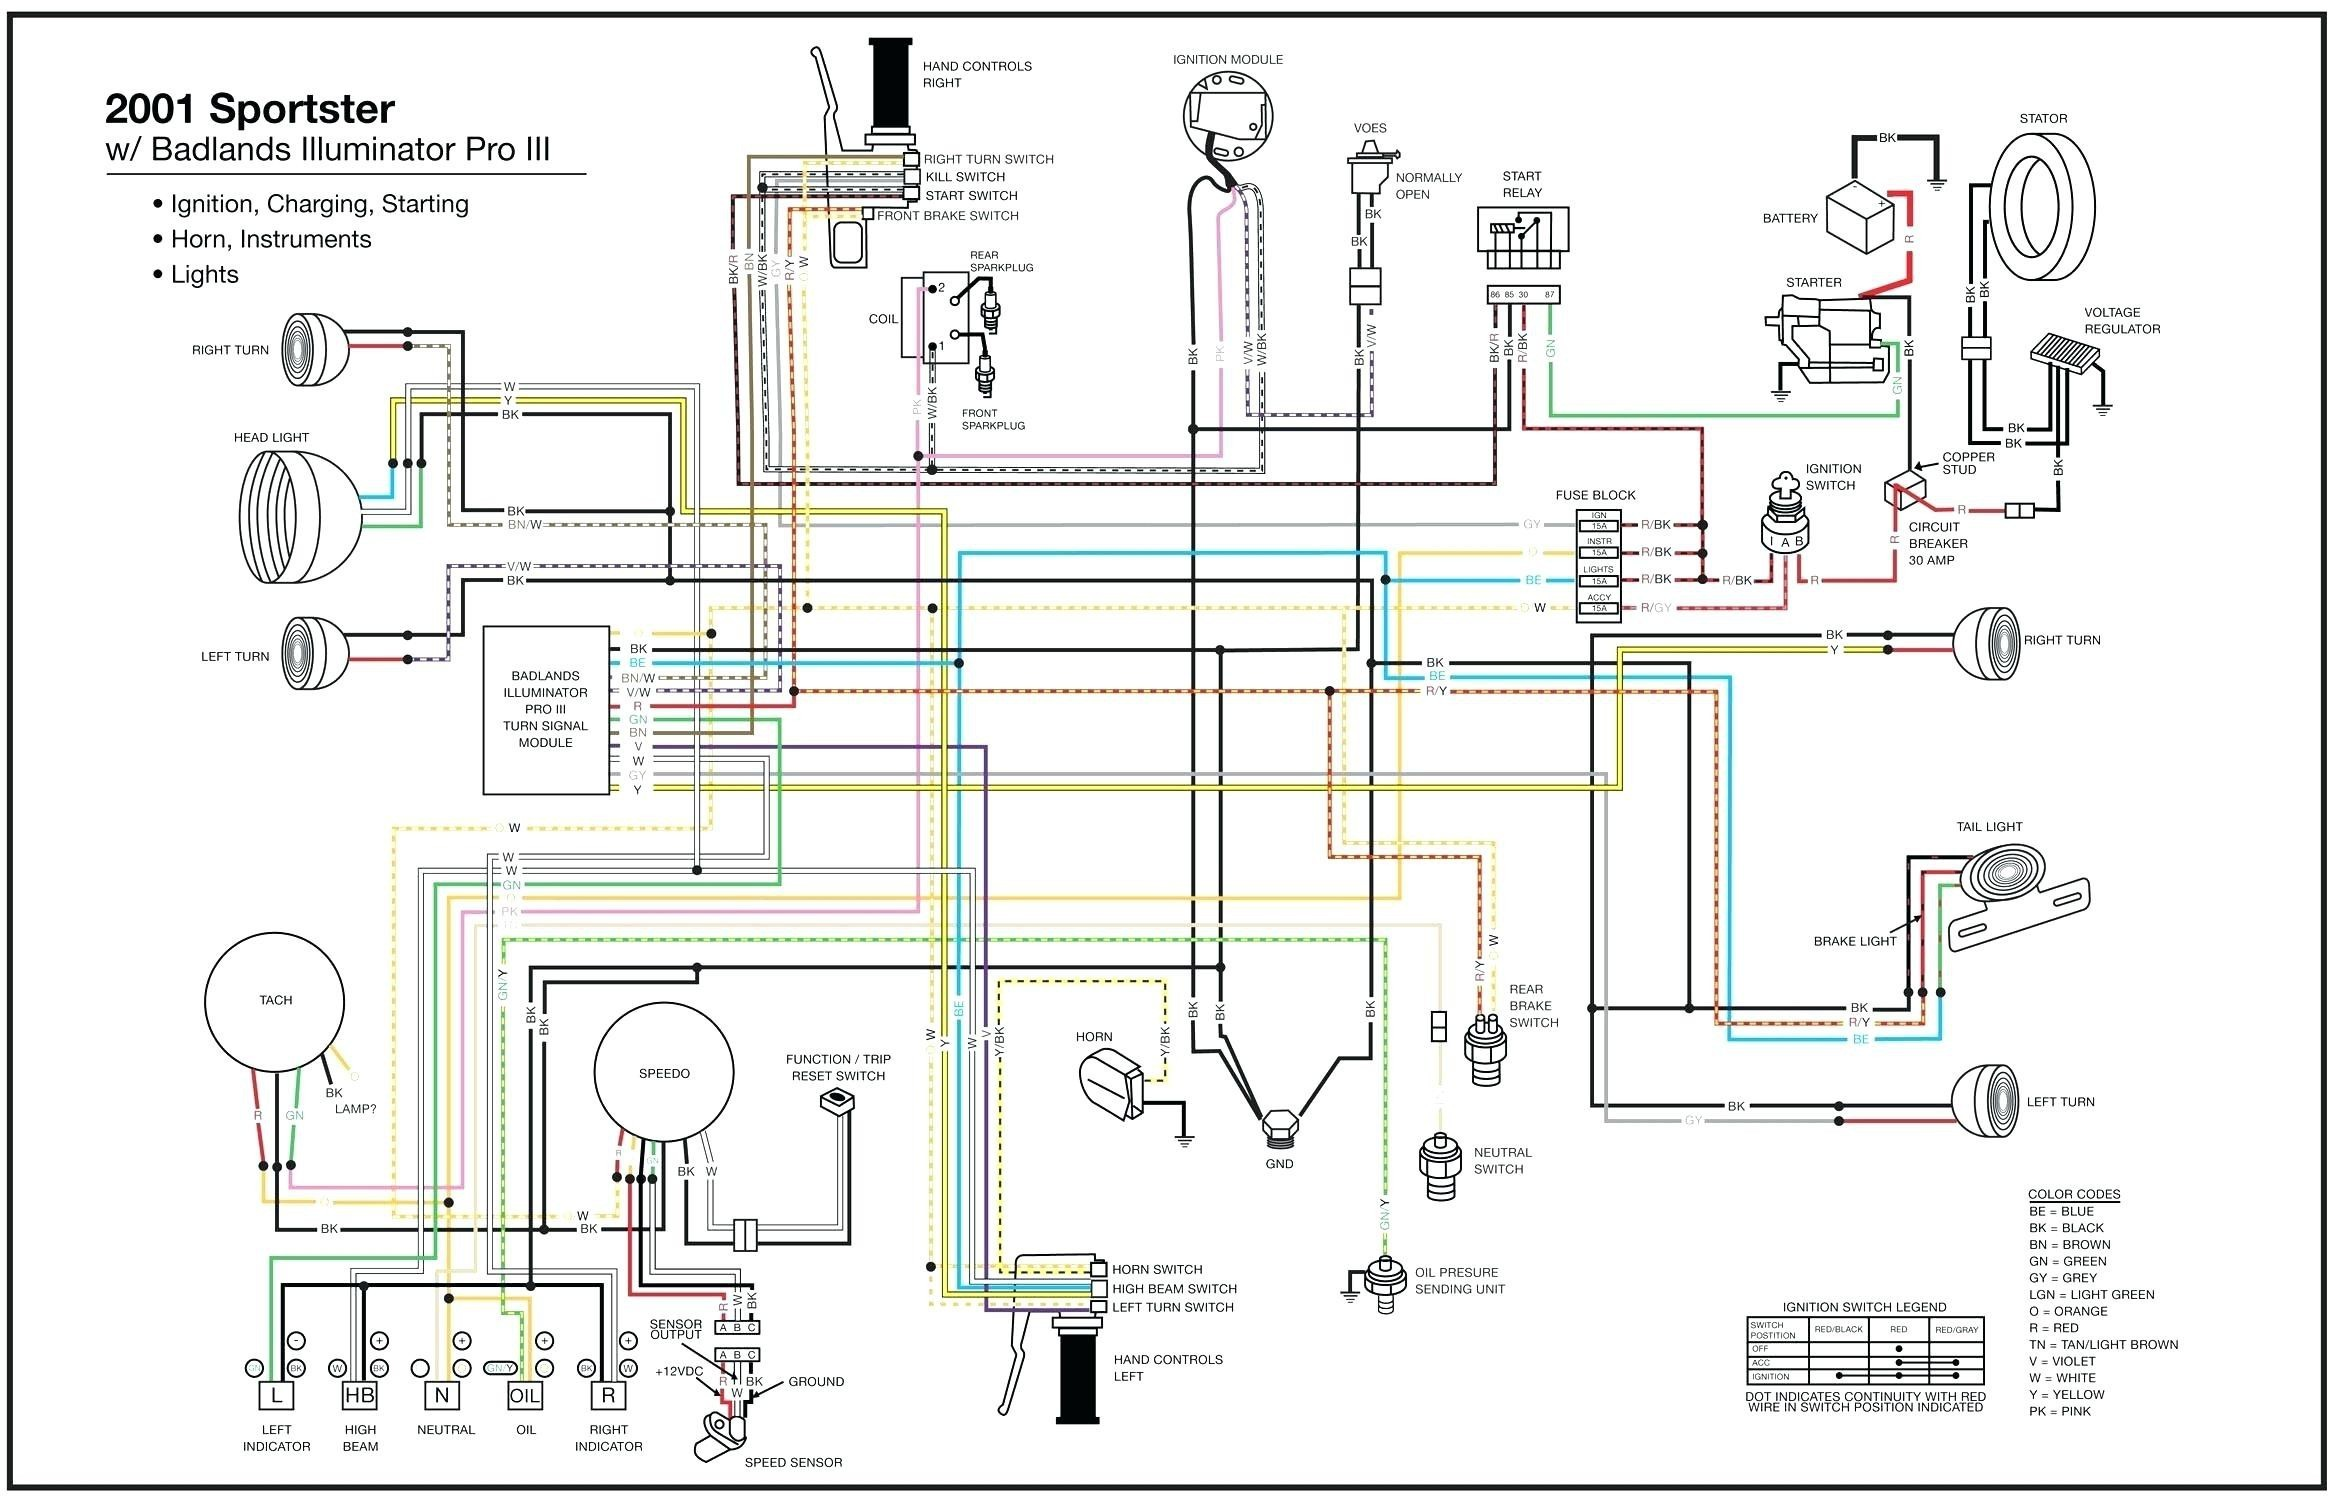 bk wiring diagram wiring diagram img 2001 sportster wiring diagram wiring diagram mega bk wiring diagram